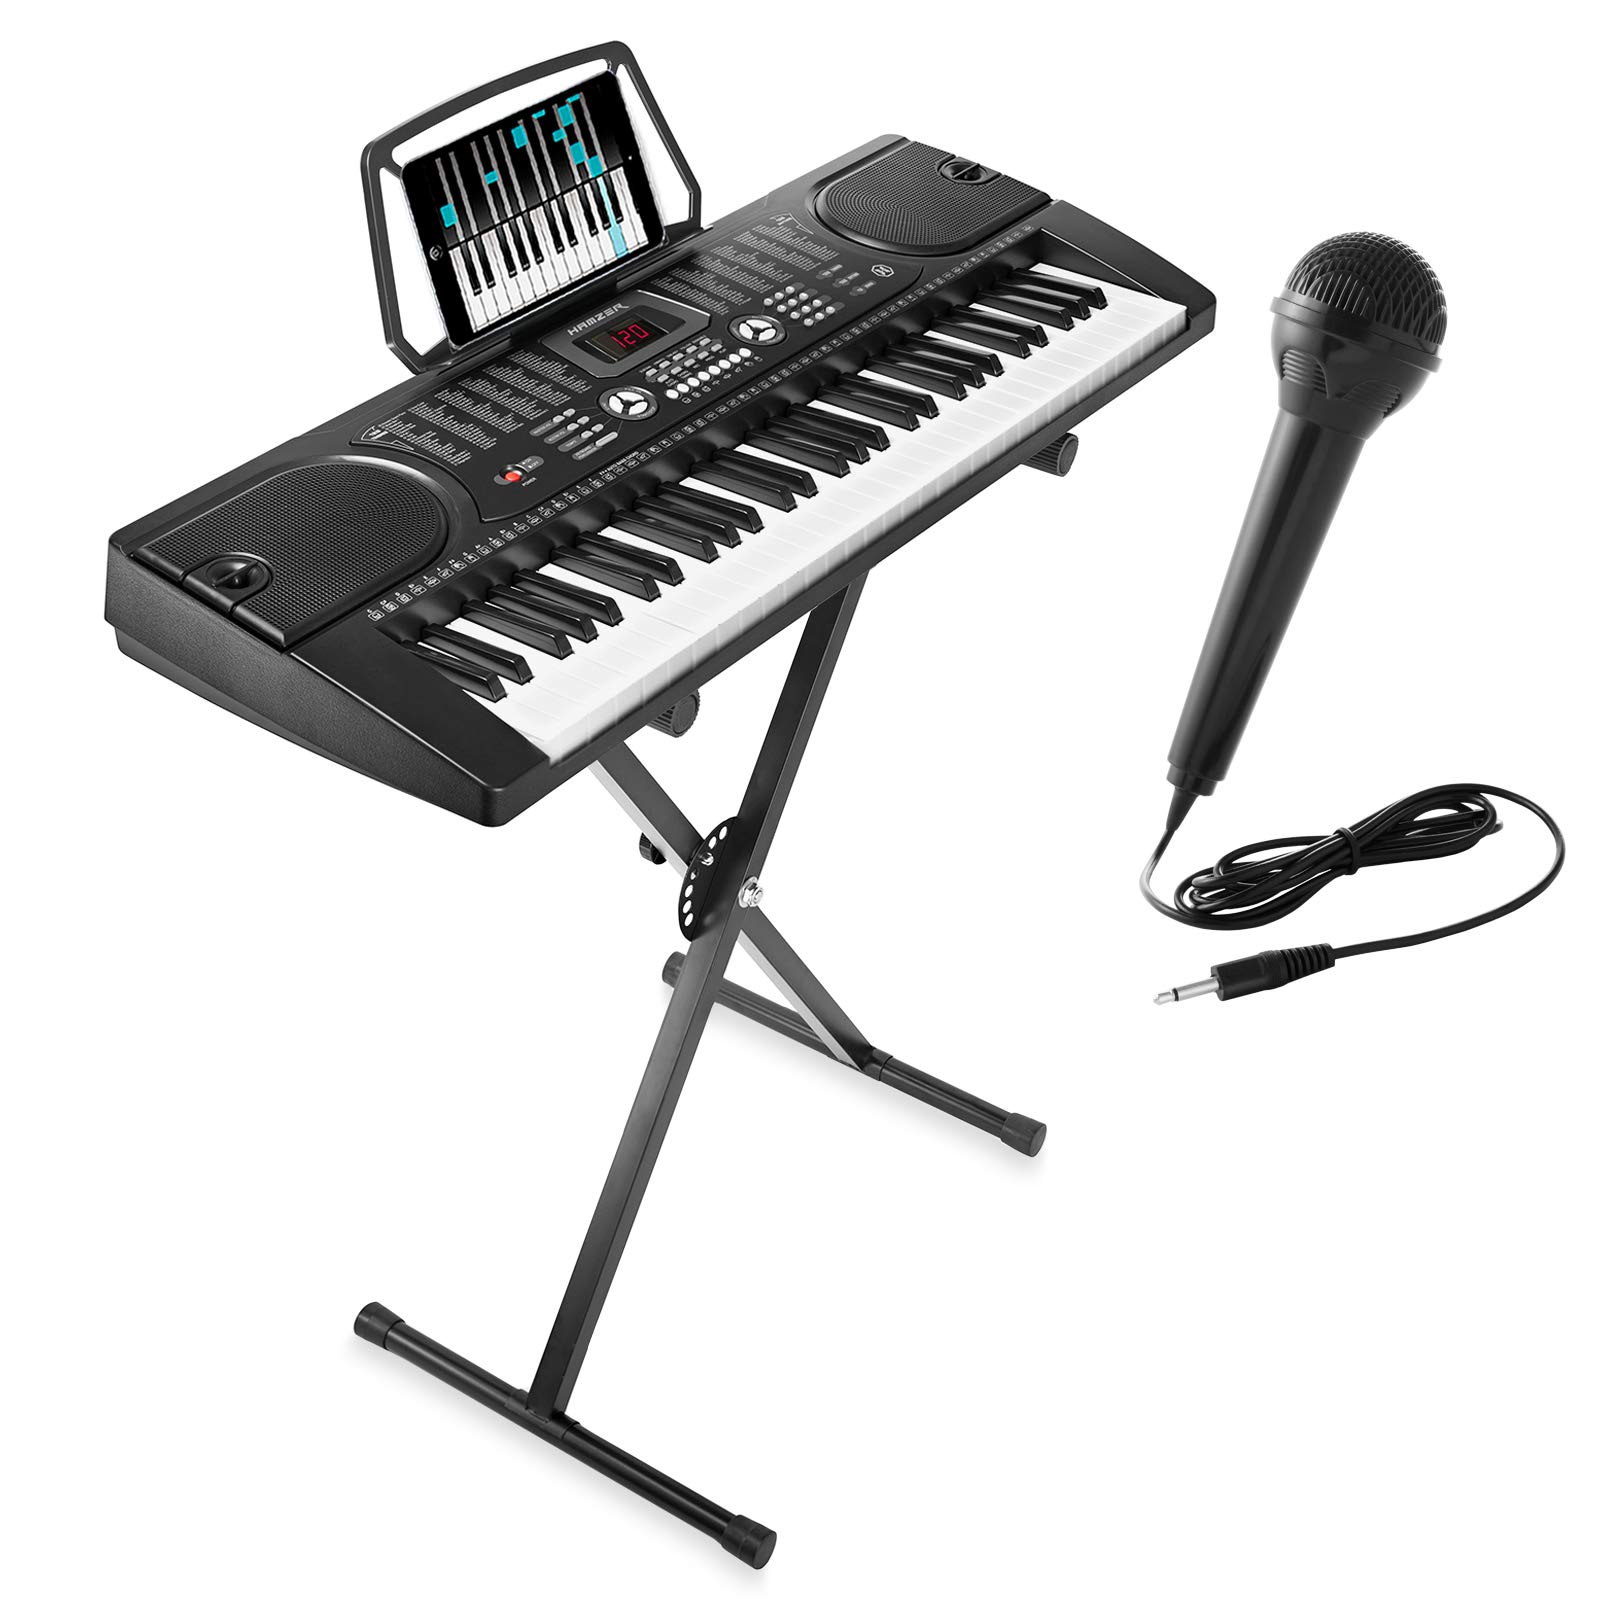 Hamzer 61-Key Electronic Piano Electric Organ Music Keyboard with Stand, Microphone, & Sticker Sheet - Black by Hamzer